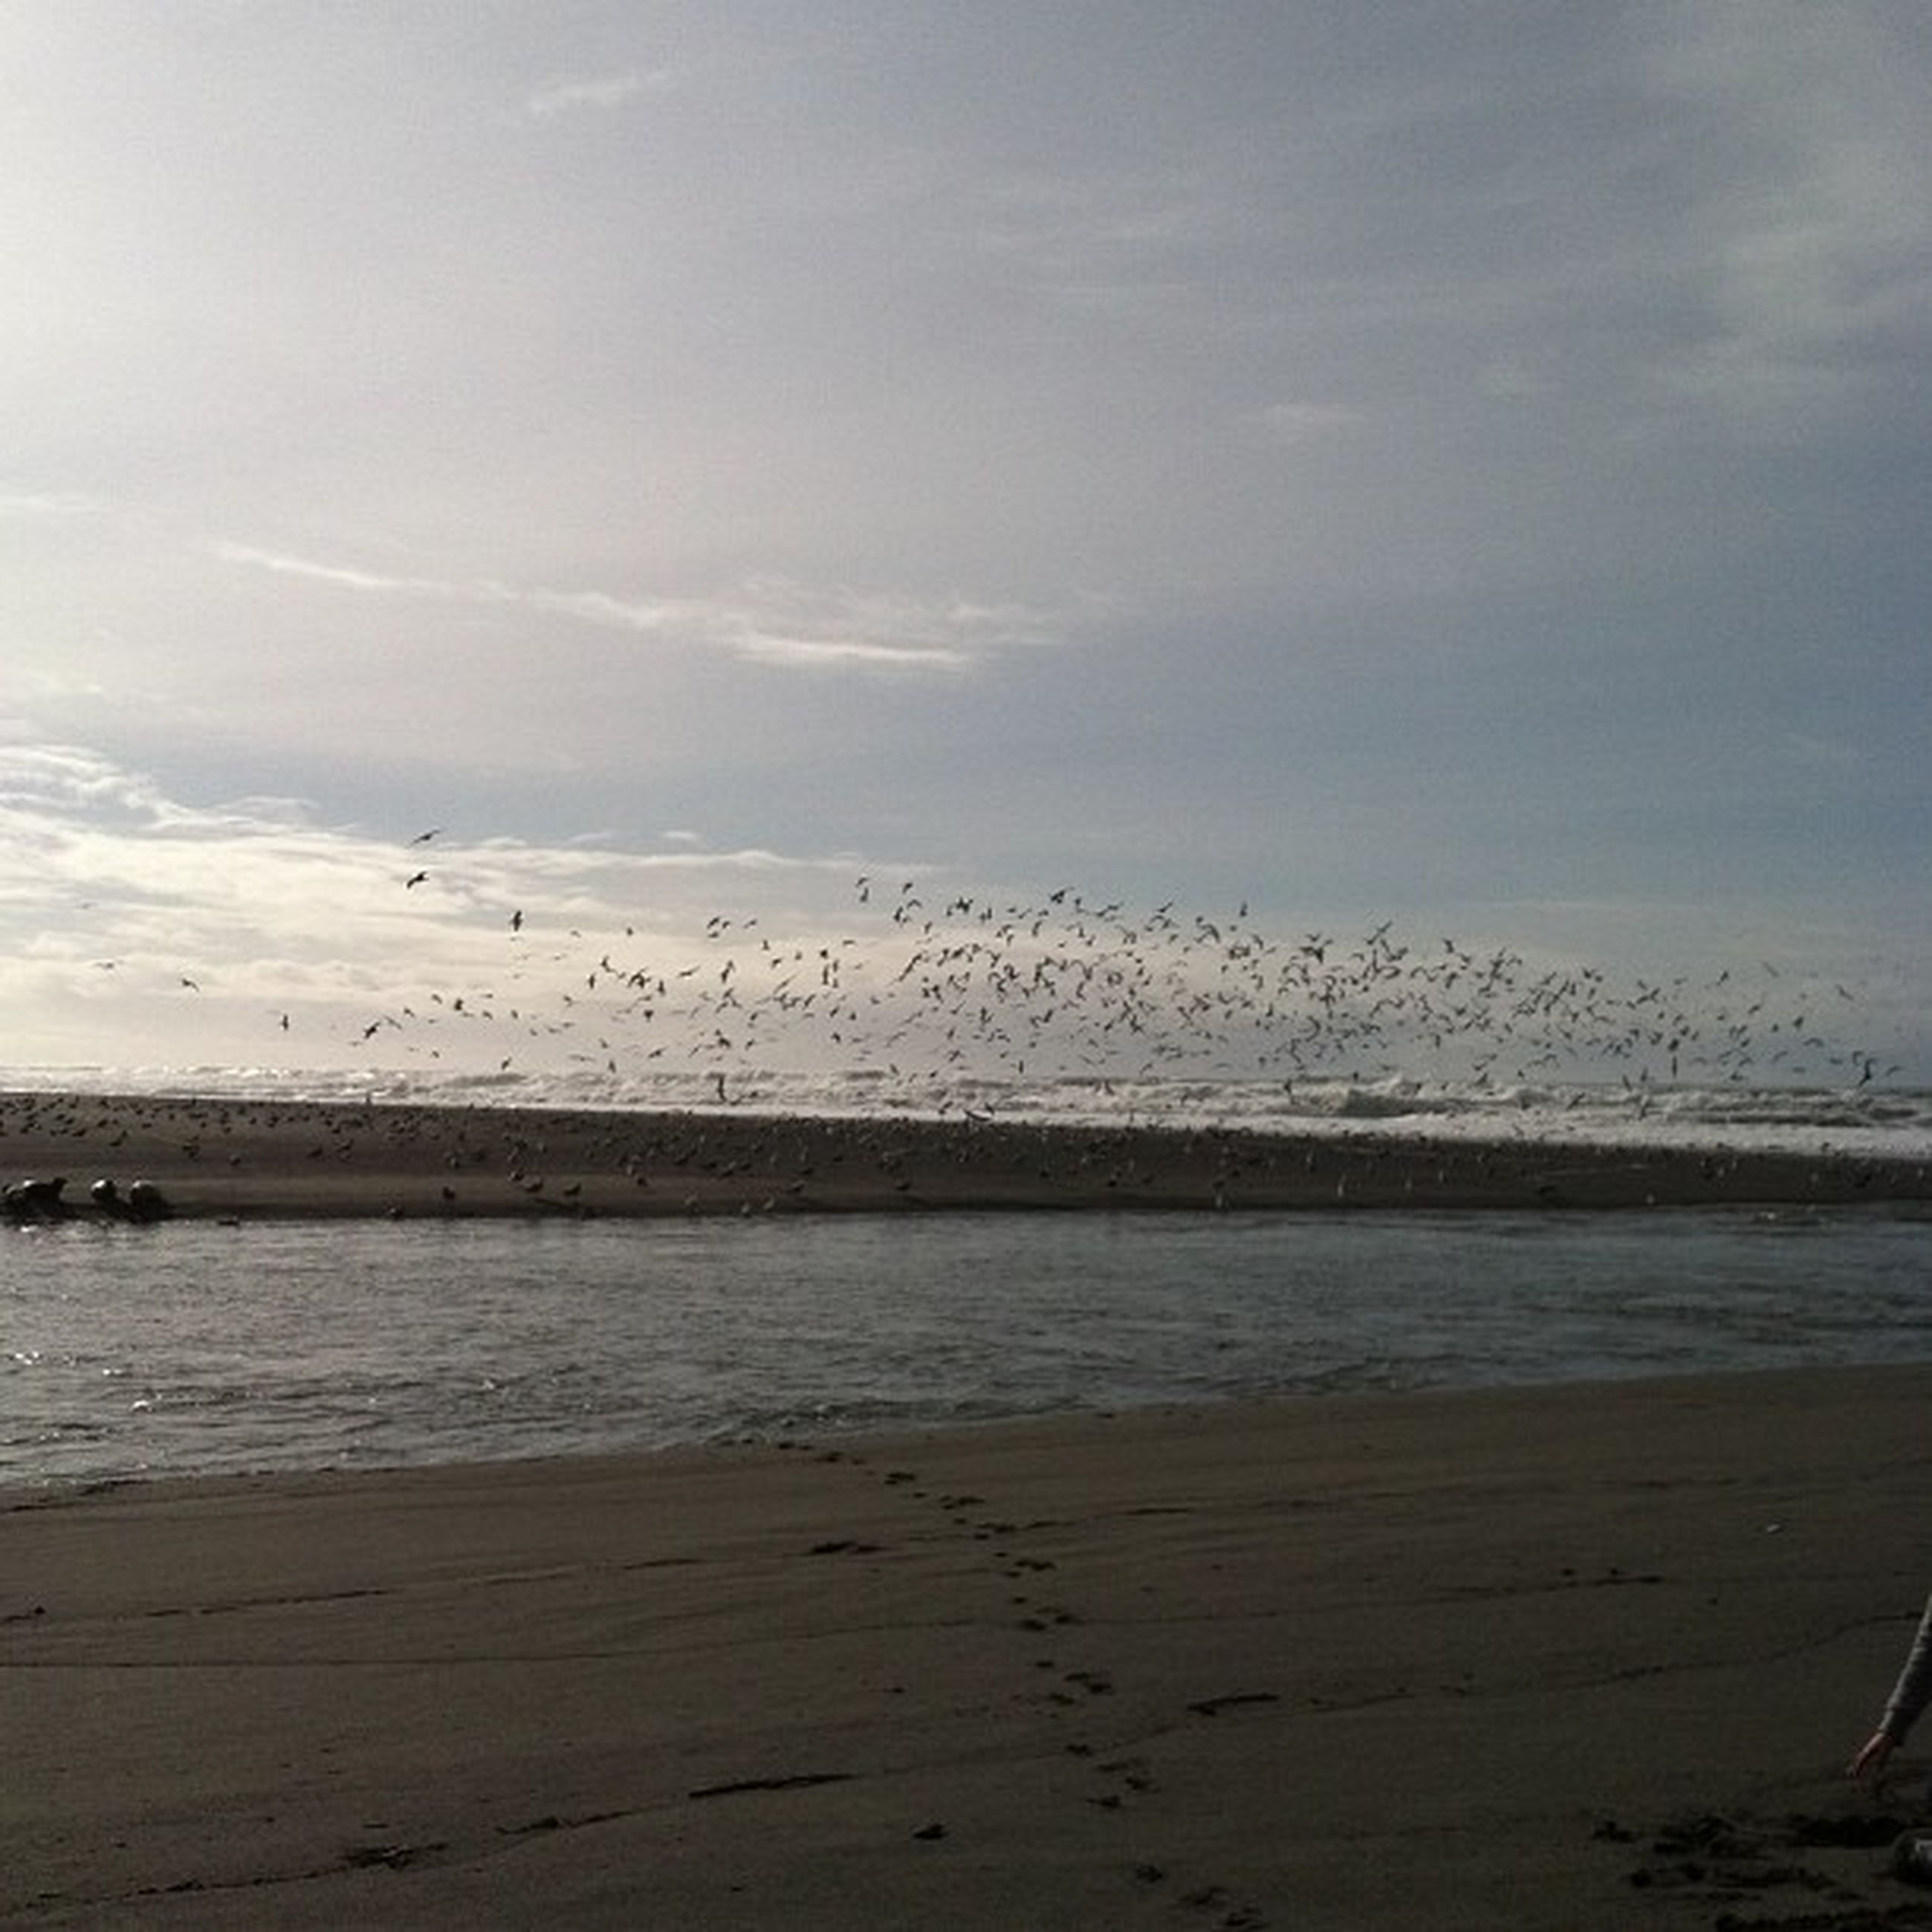 bird, animal themes, animals in the wild, water, wildlife, sea, sky, beach, flying, nature, tranquil scene, tranquility, flock of birds, scenics, cloud - sky, beauty in nature, seagull, shore, horizon over water